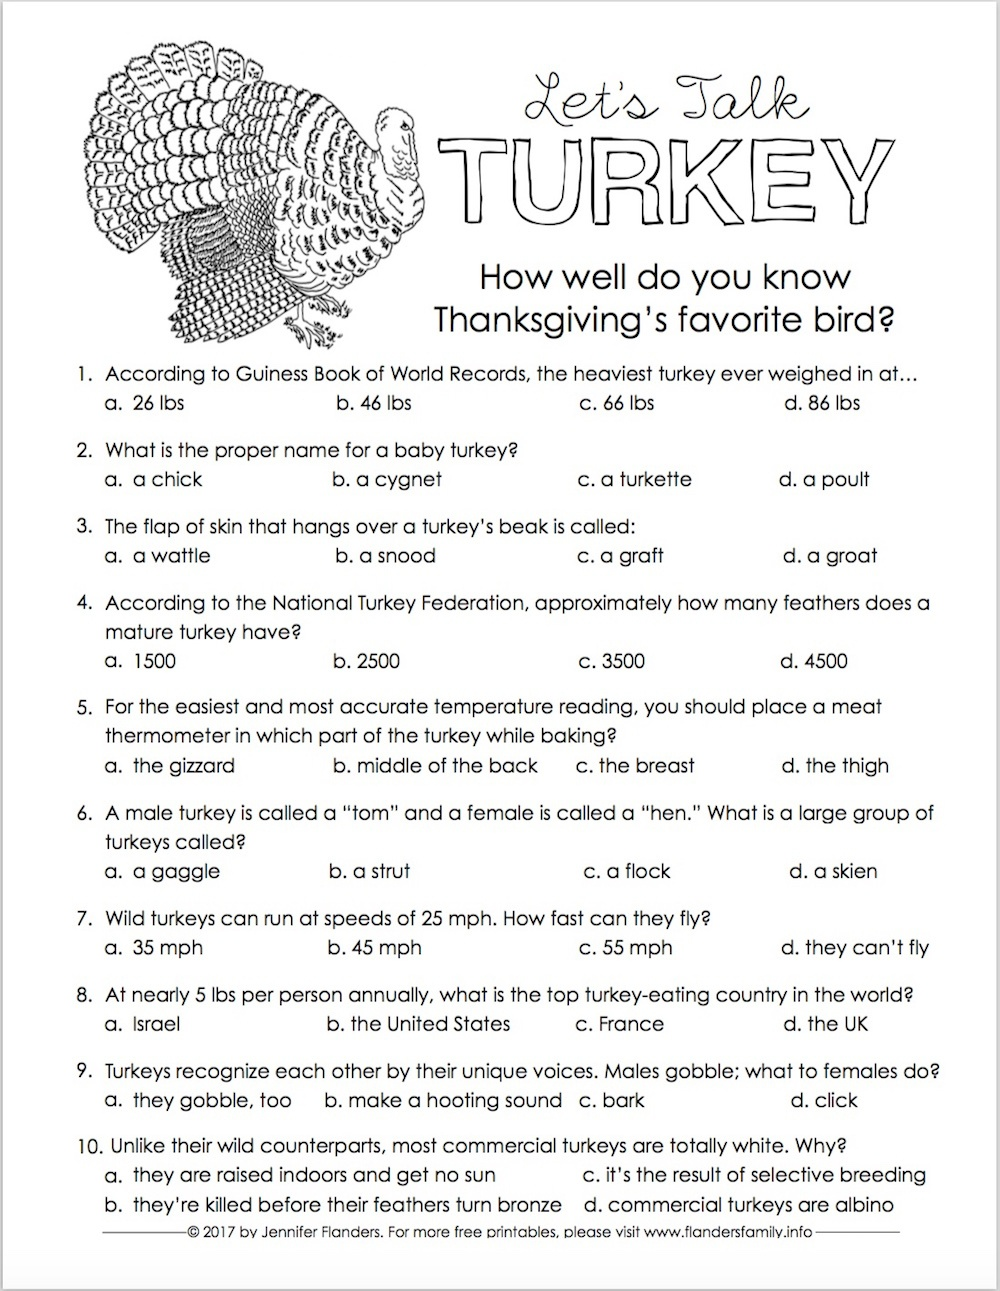 Let's Talk Turkey: Trivia Quiz For Thanksgiving - Flanders Family - Free Printable Trivia Questions And Answers